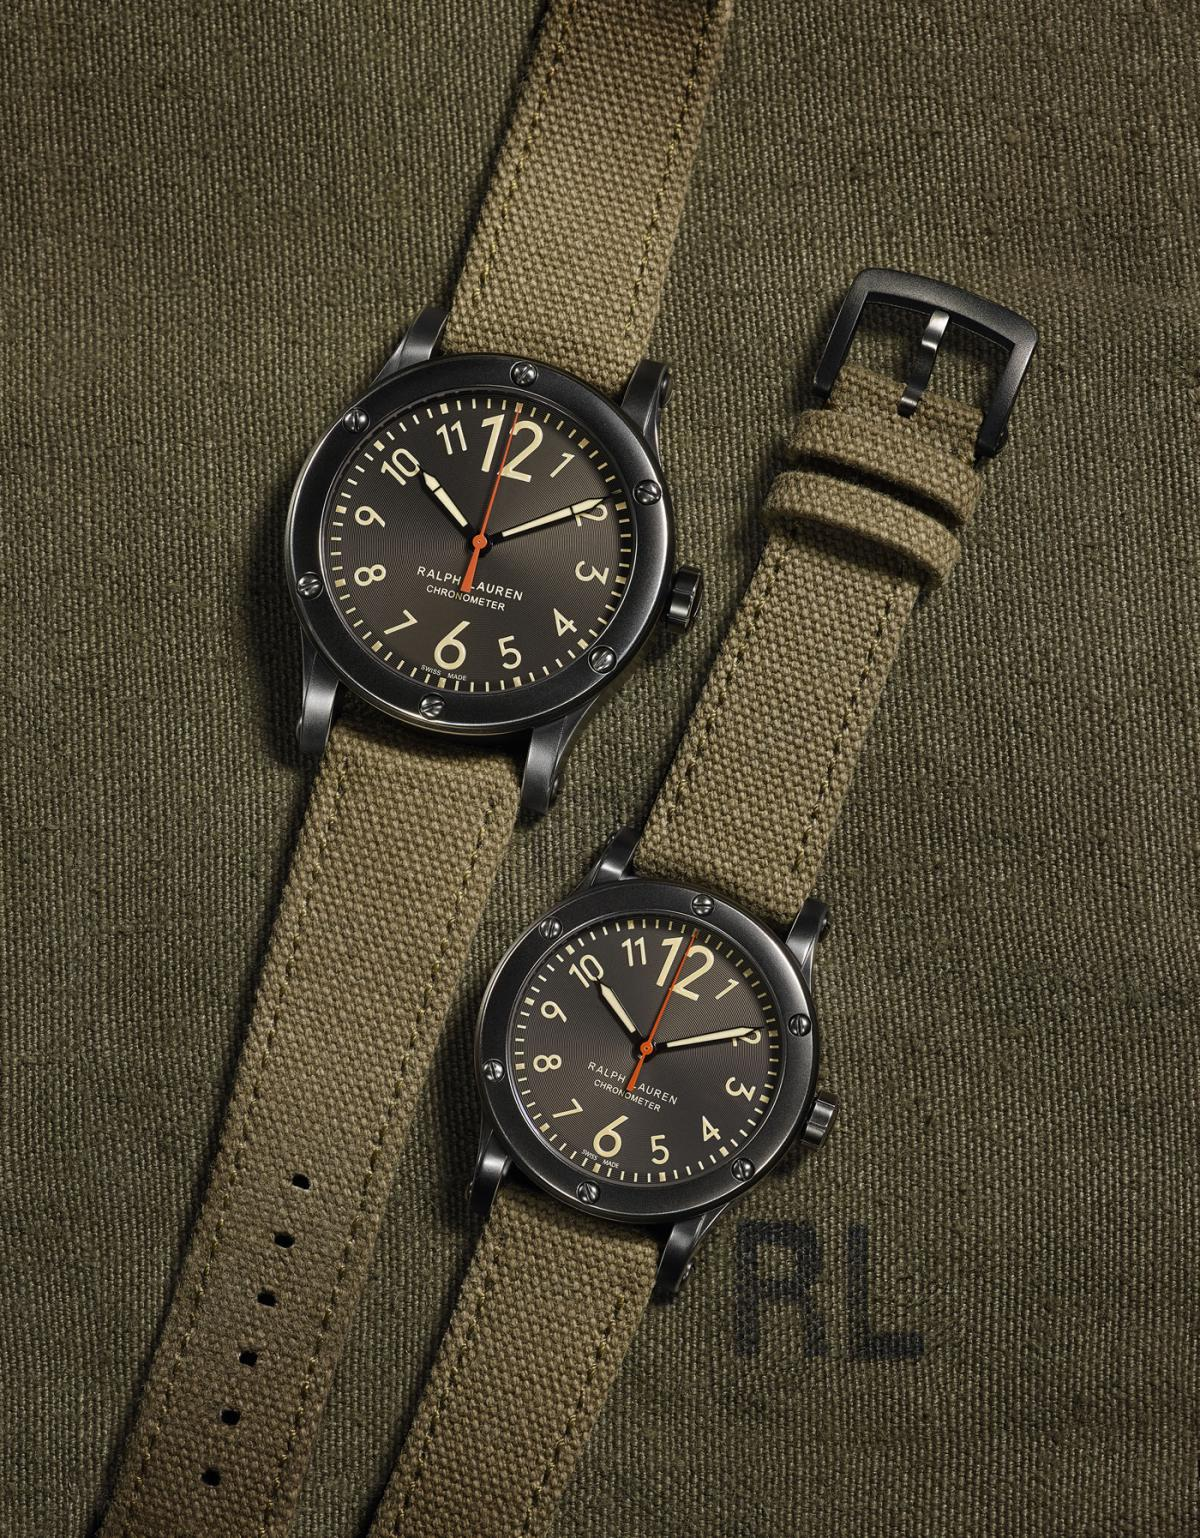 Ralph Lauren introduces two new watches in RL67 Safari Chronometer collection